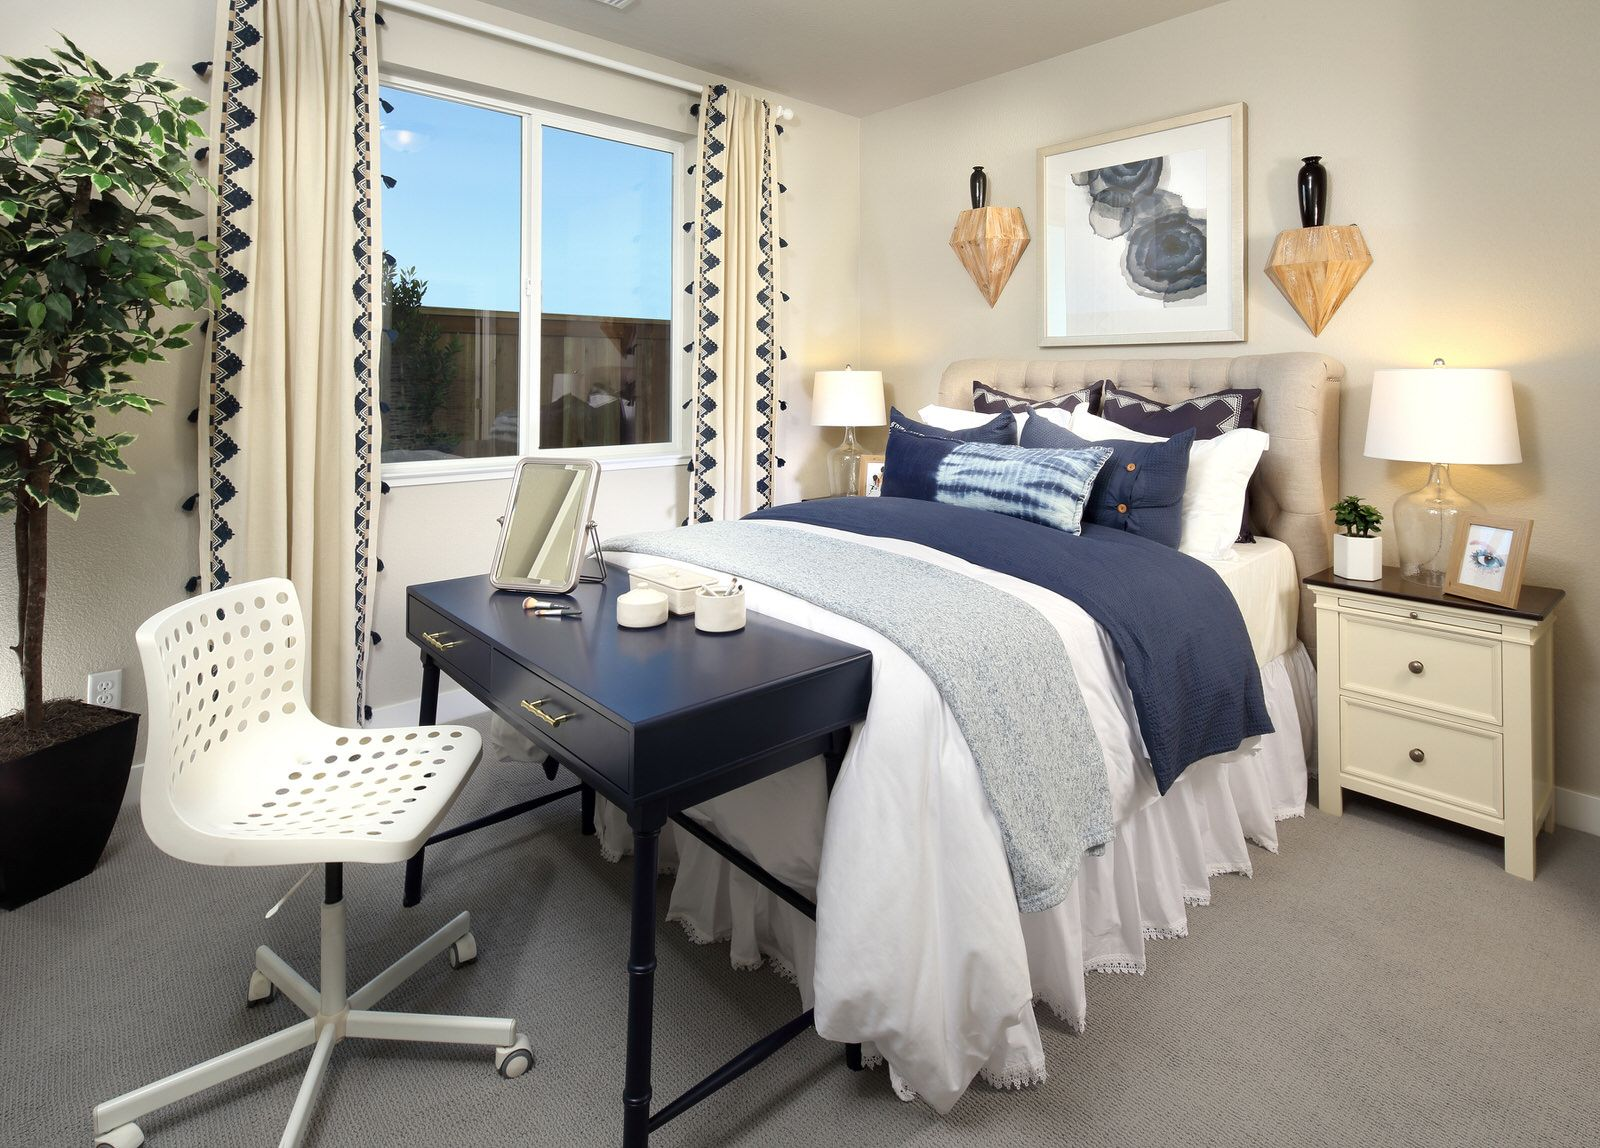 Bedroom featured in the Plan 2 Indigo Plan By Taylor Morrison in Sacramento, CA